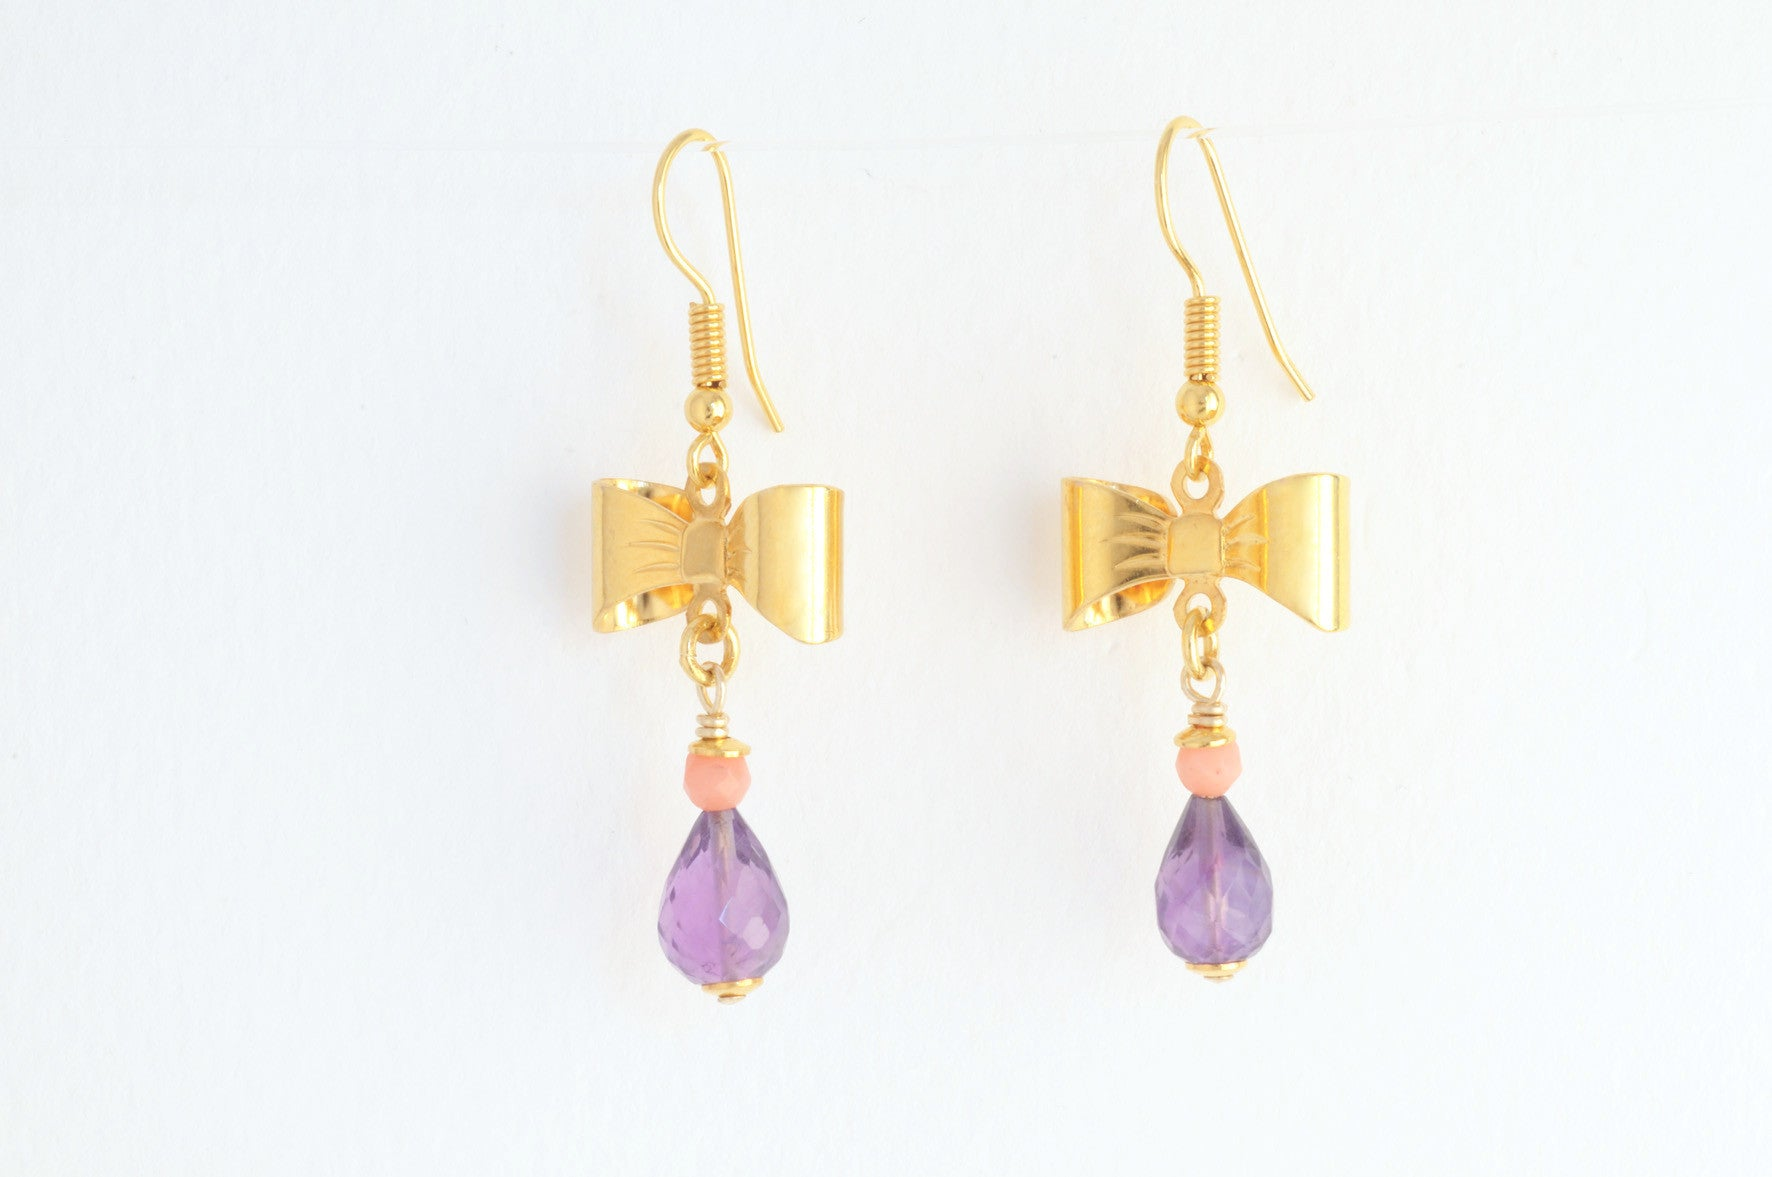 ....Ohrringe BOW medium vergoldet..Earrings BOW medium gold plated....